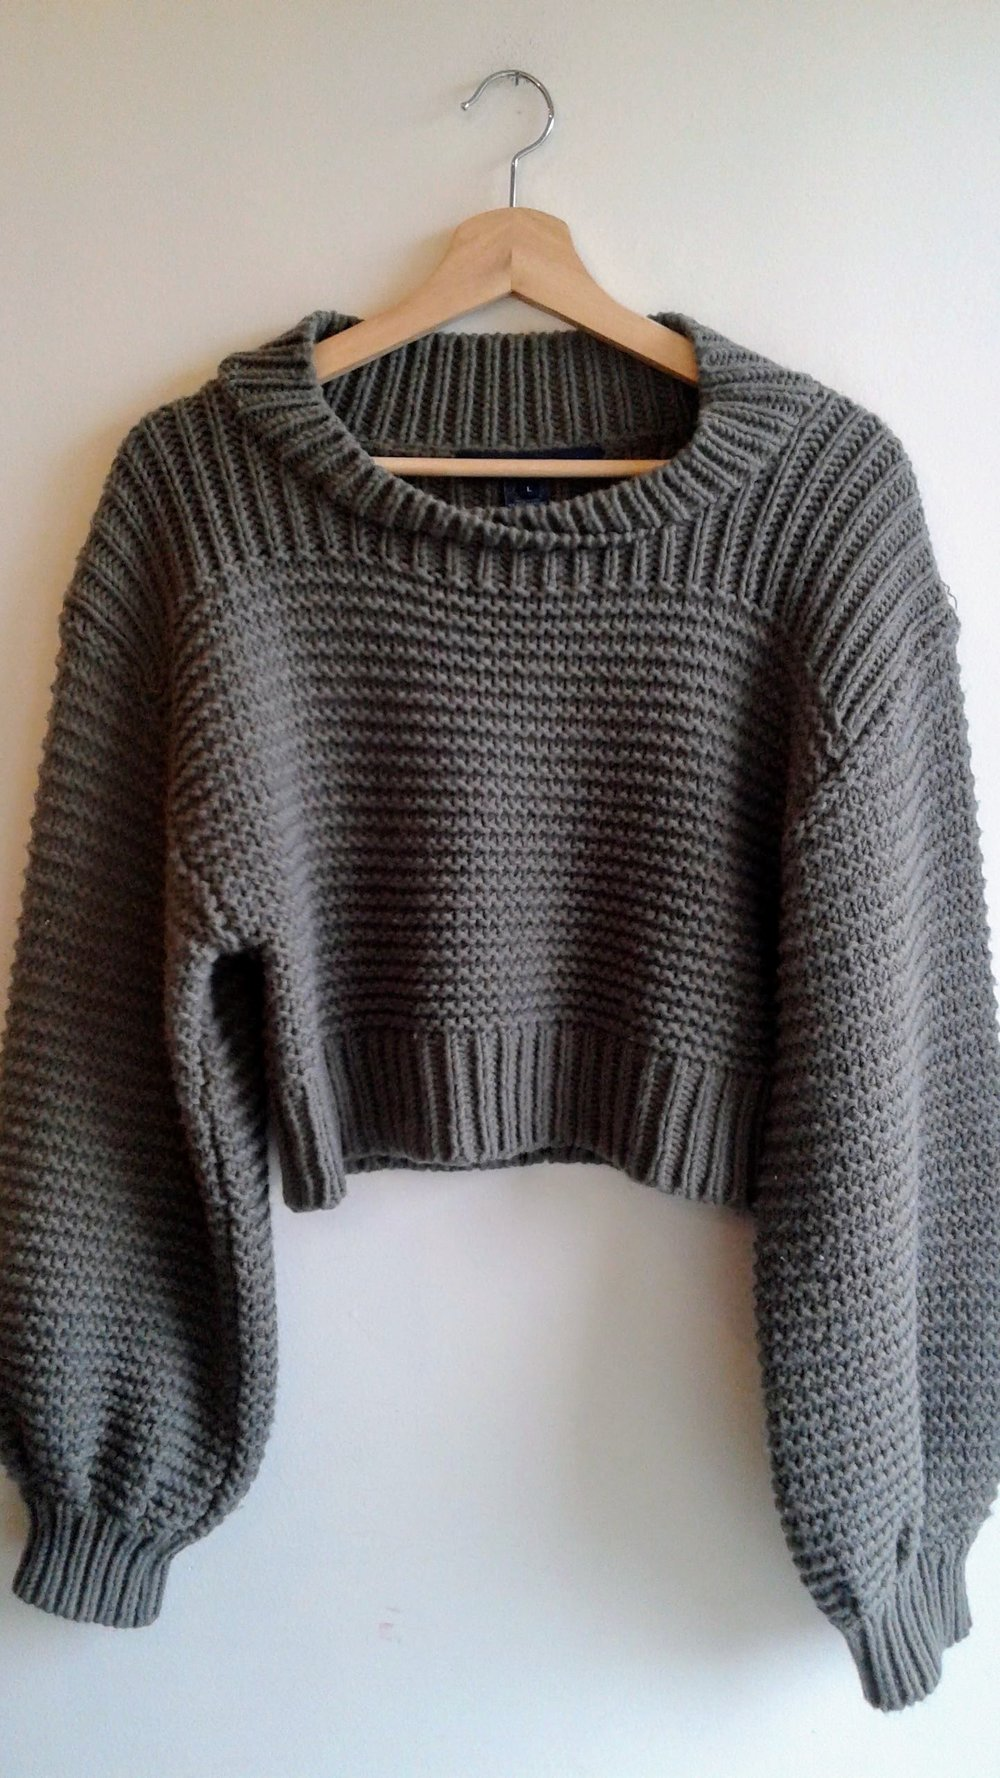 French Connection sweater; Size L, $30